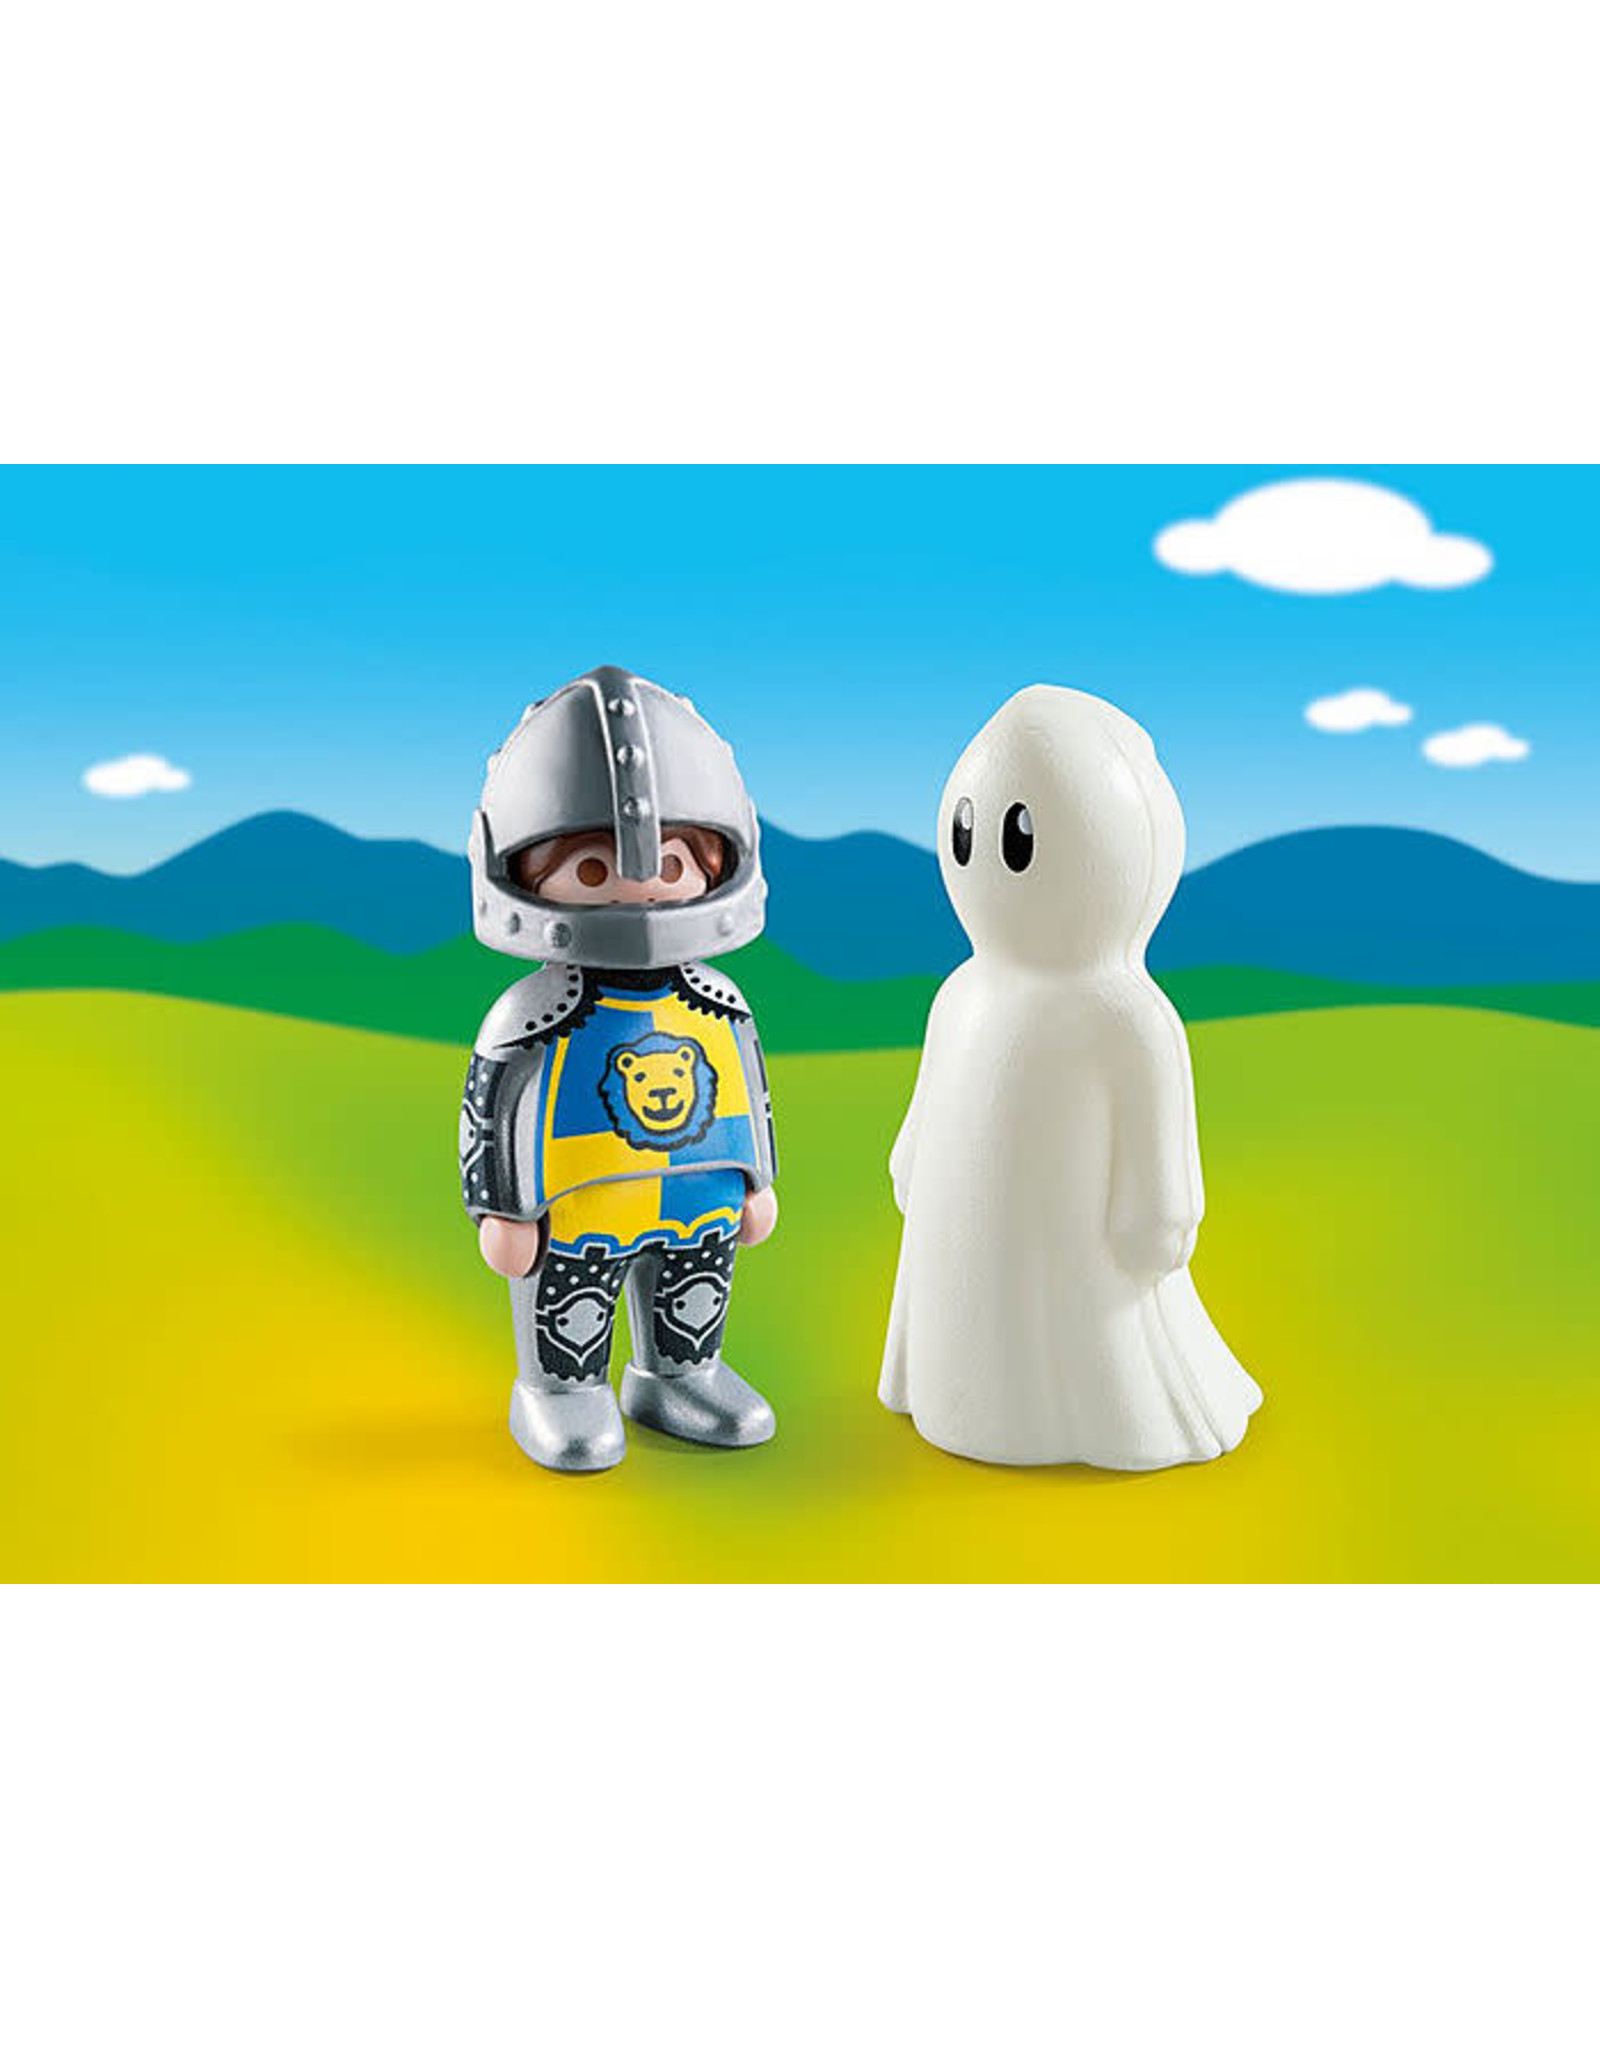 Playmobil 1.2.3 Knight with Ghost